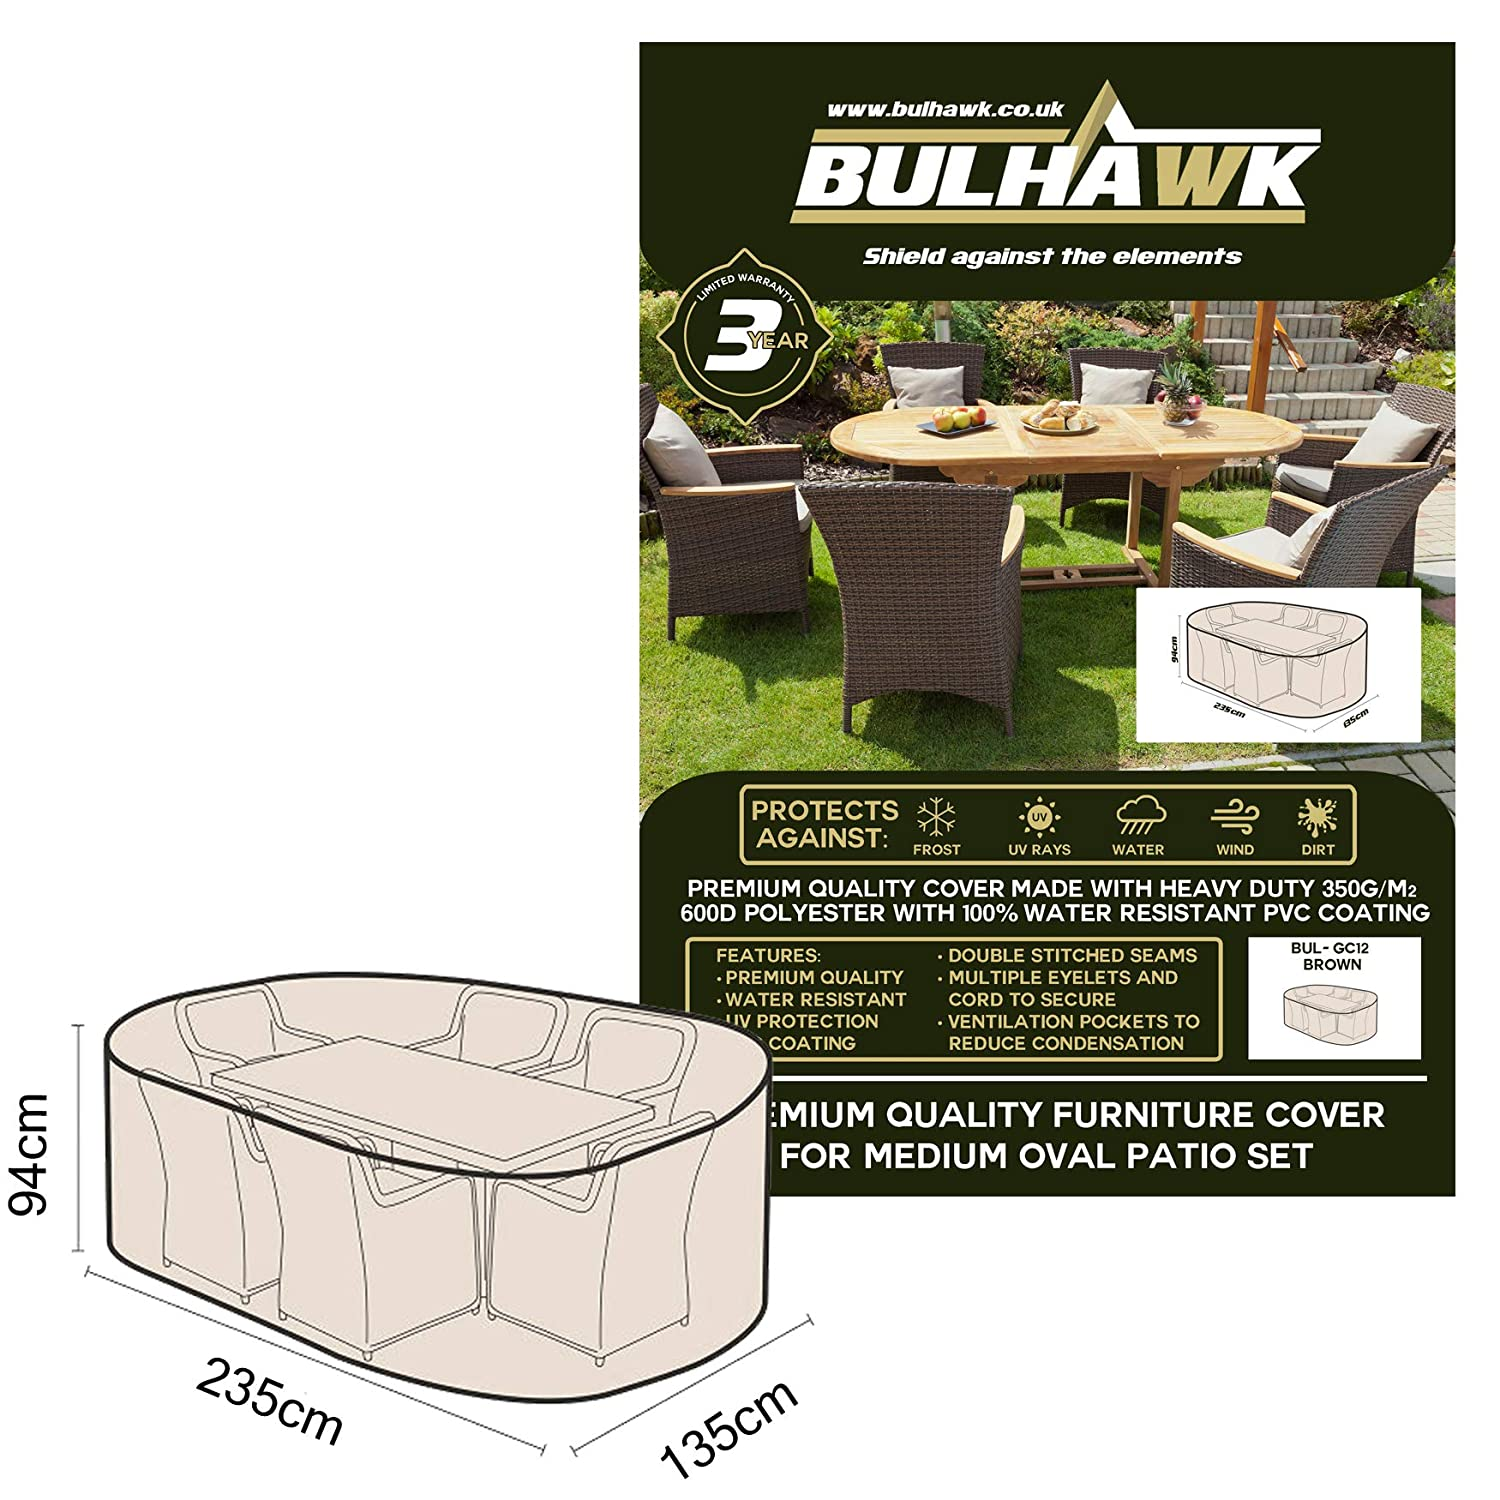 Bulhawk® Oval Patio Garden Table and Chairs Furniture Cover (235x135x94cm) Superior Protection | Heavy Duty Premium Quality | 100% Waterproof | Brown or Grey (Brown)